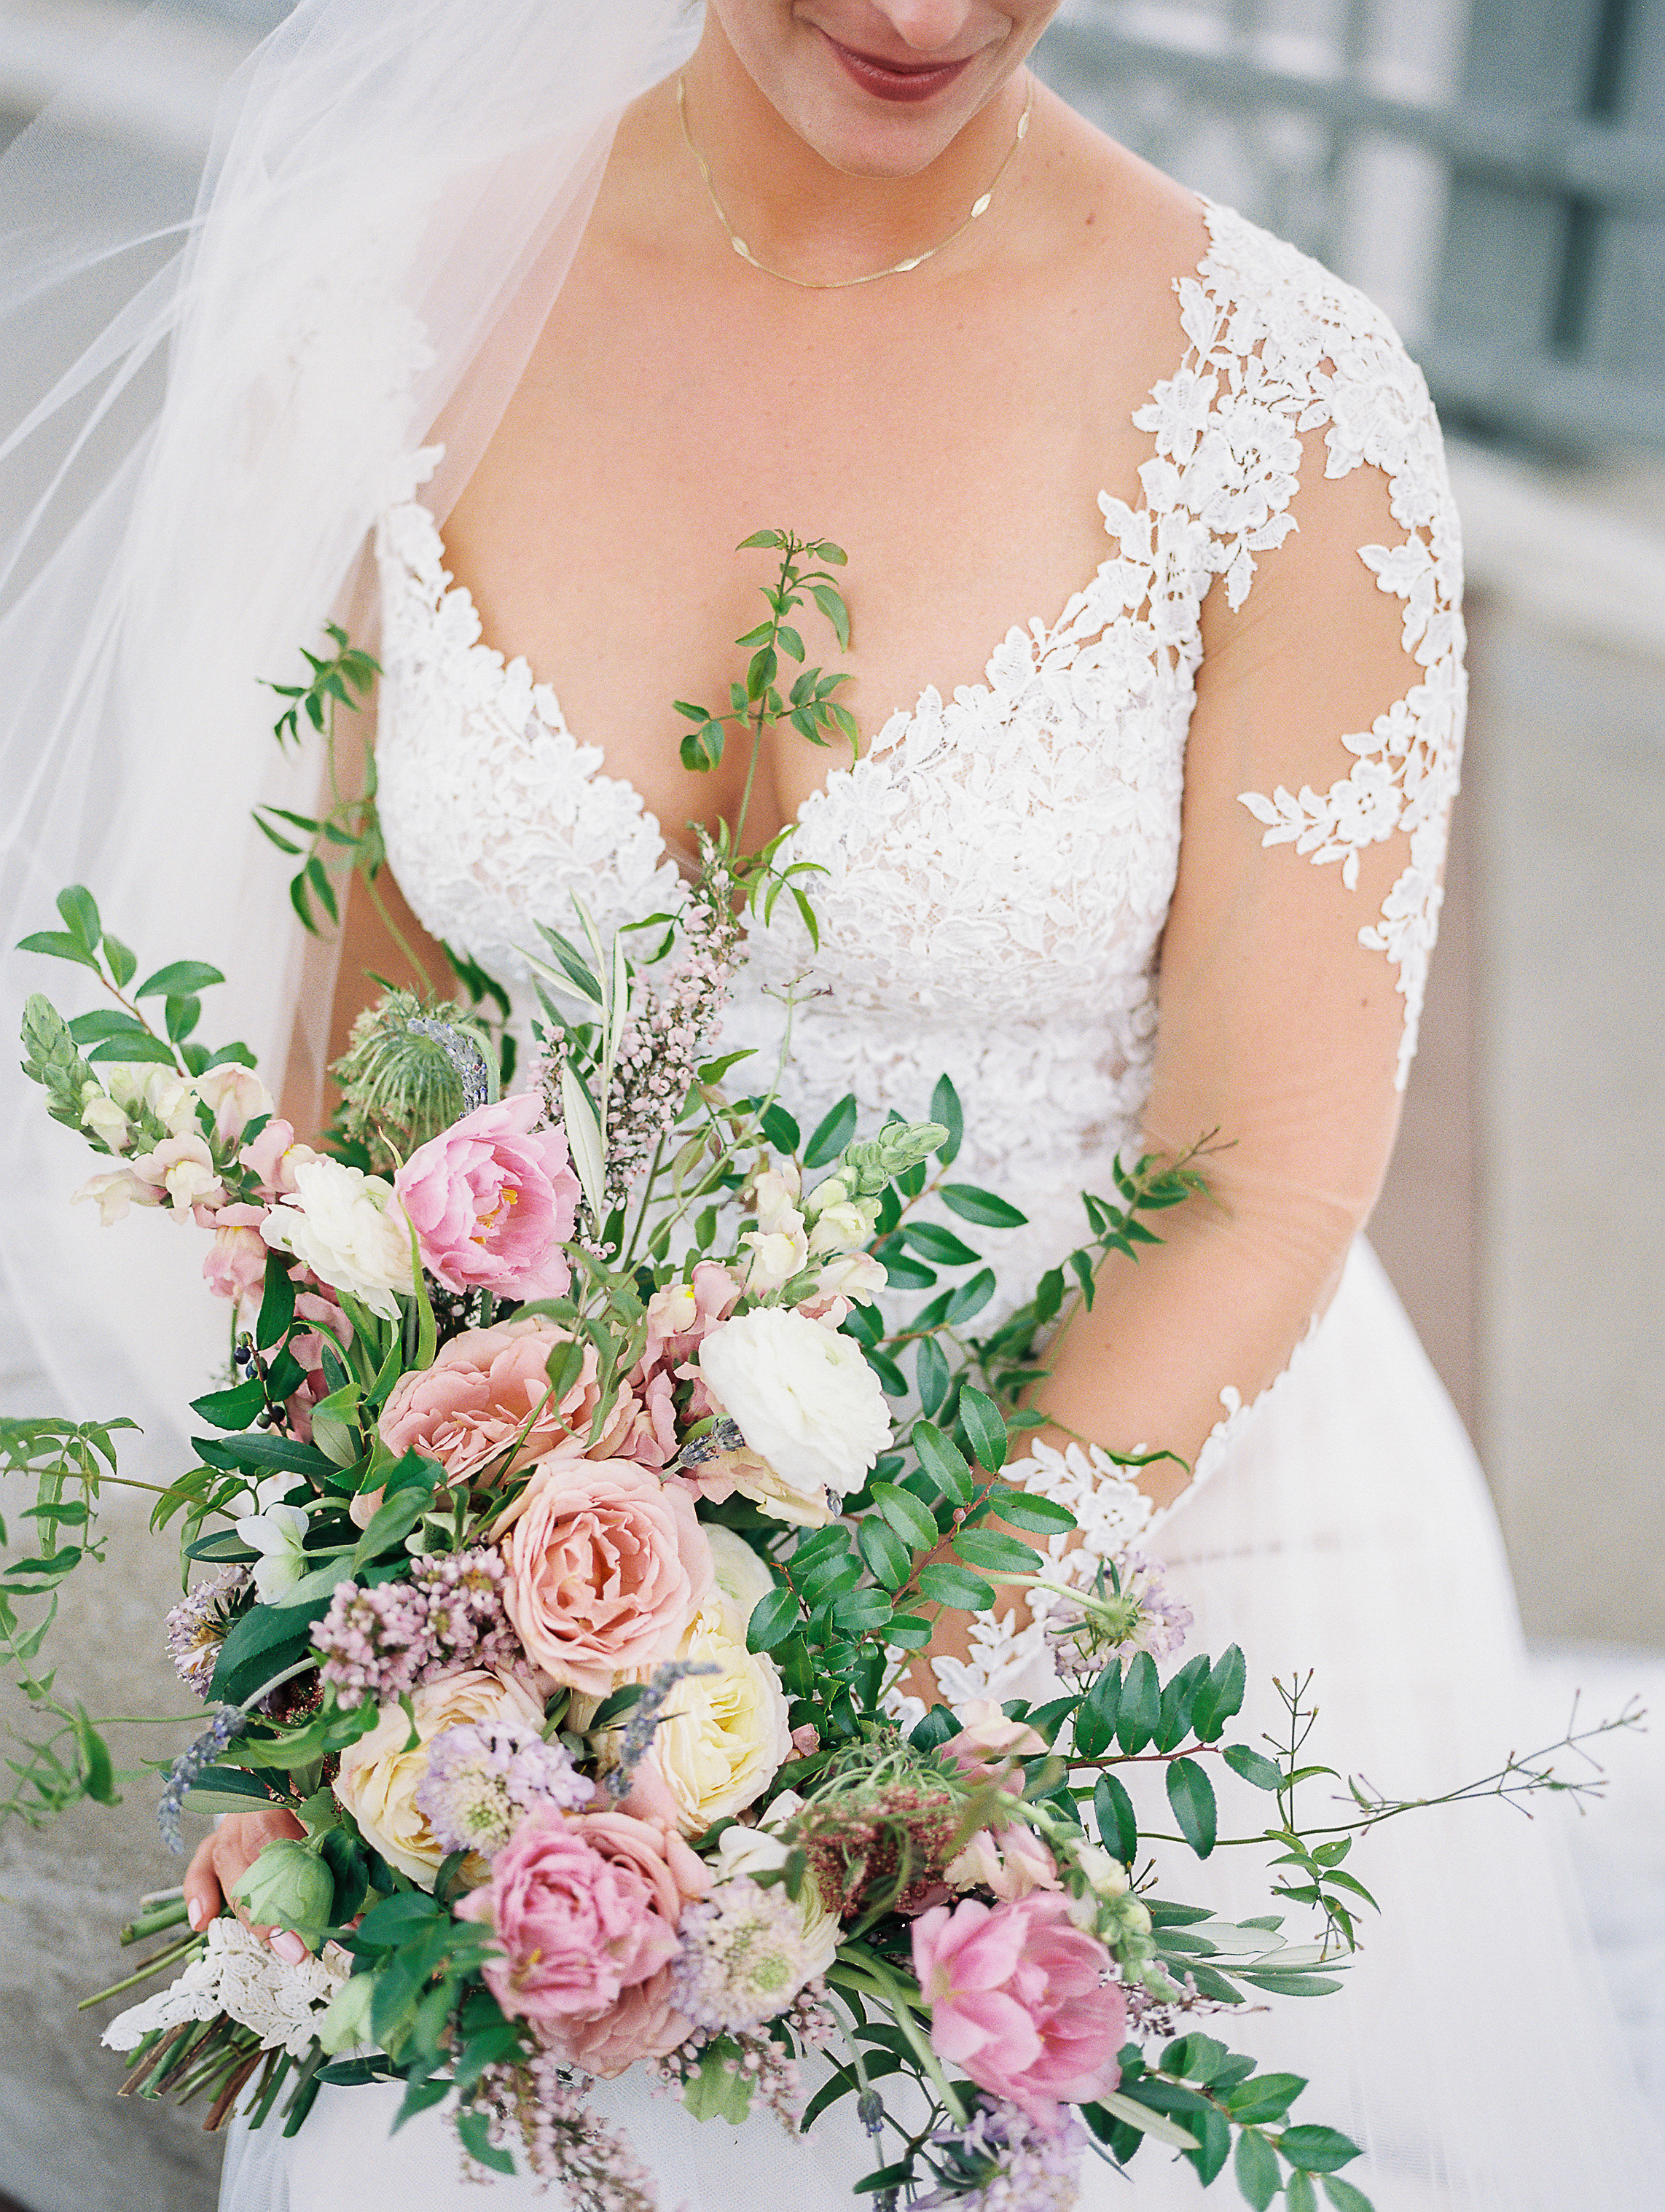 Natural, lush bridal bouquet with garden roses, ranunculus, and greenery // Nashville Wedding Floral Design